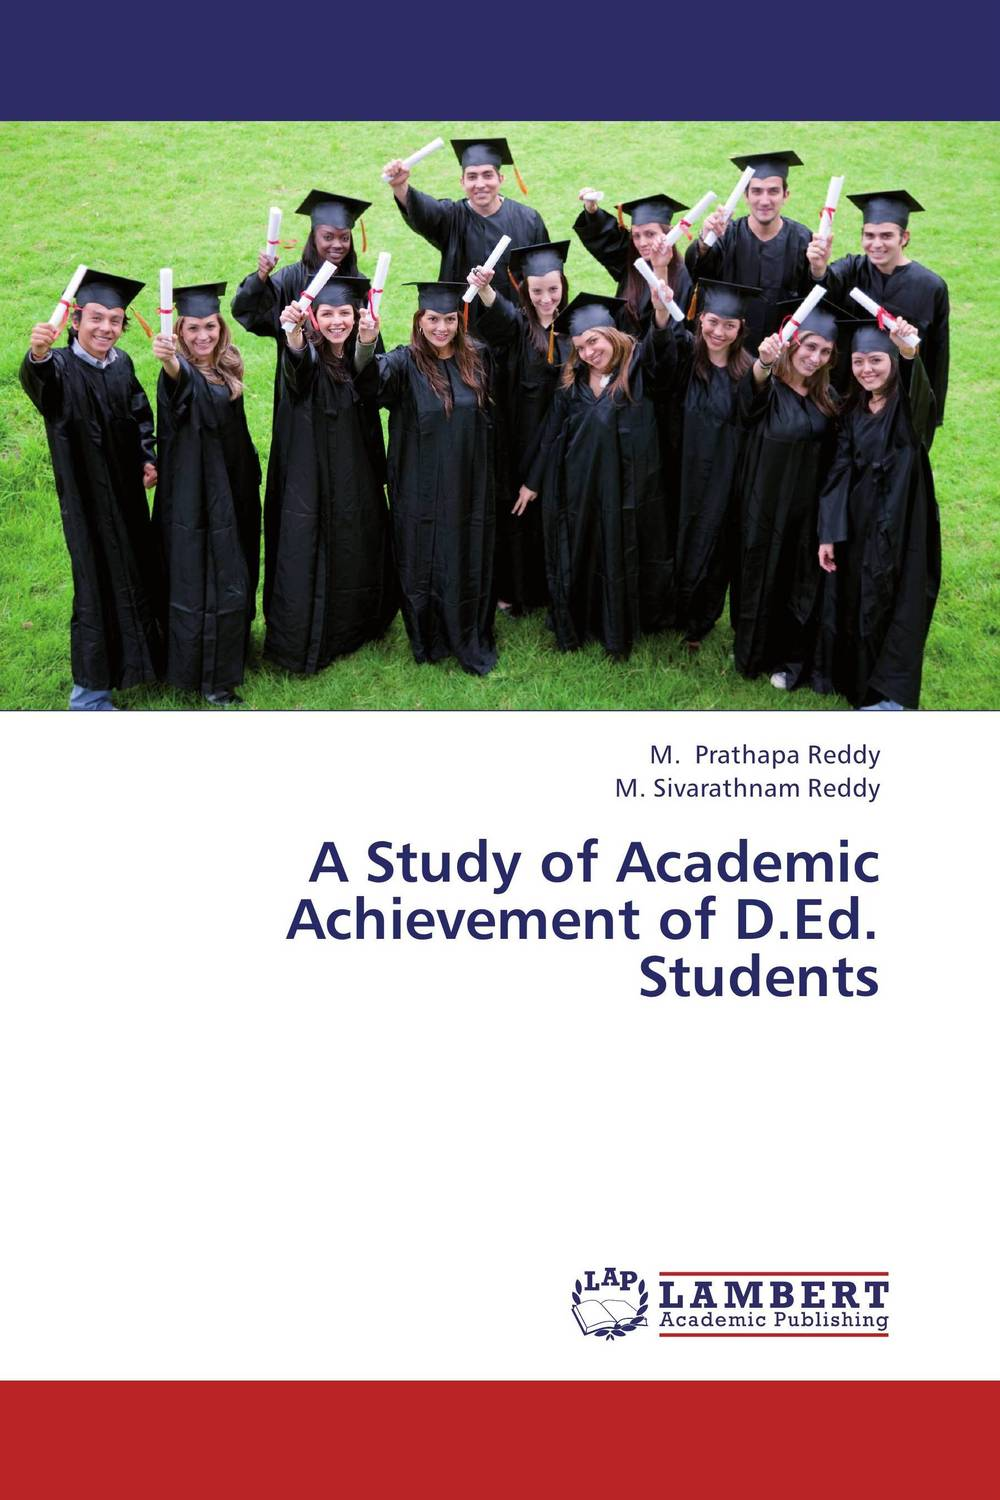 A Study of Academic Achievement of D.Ed. Students